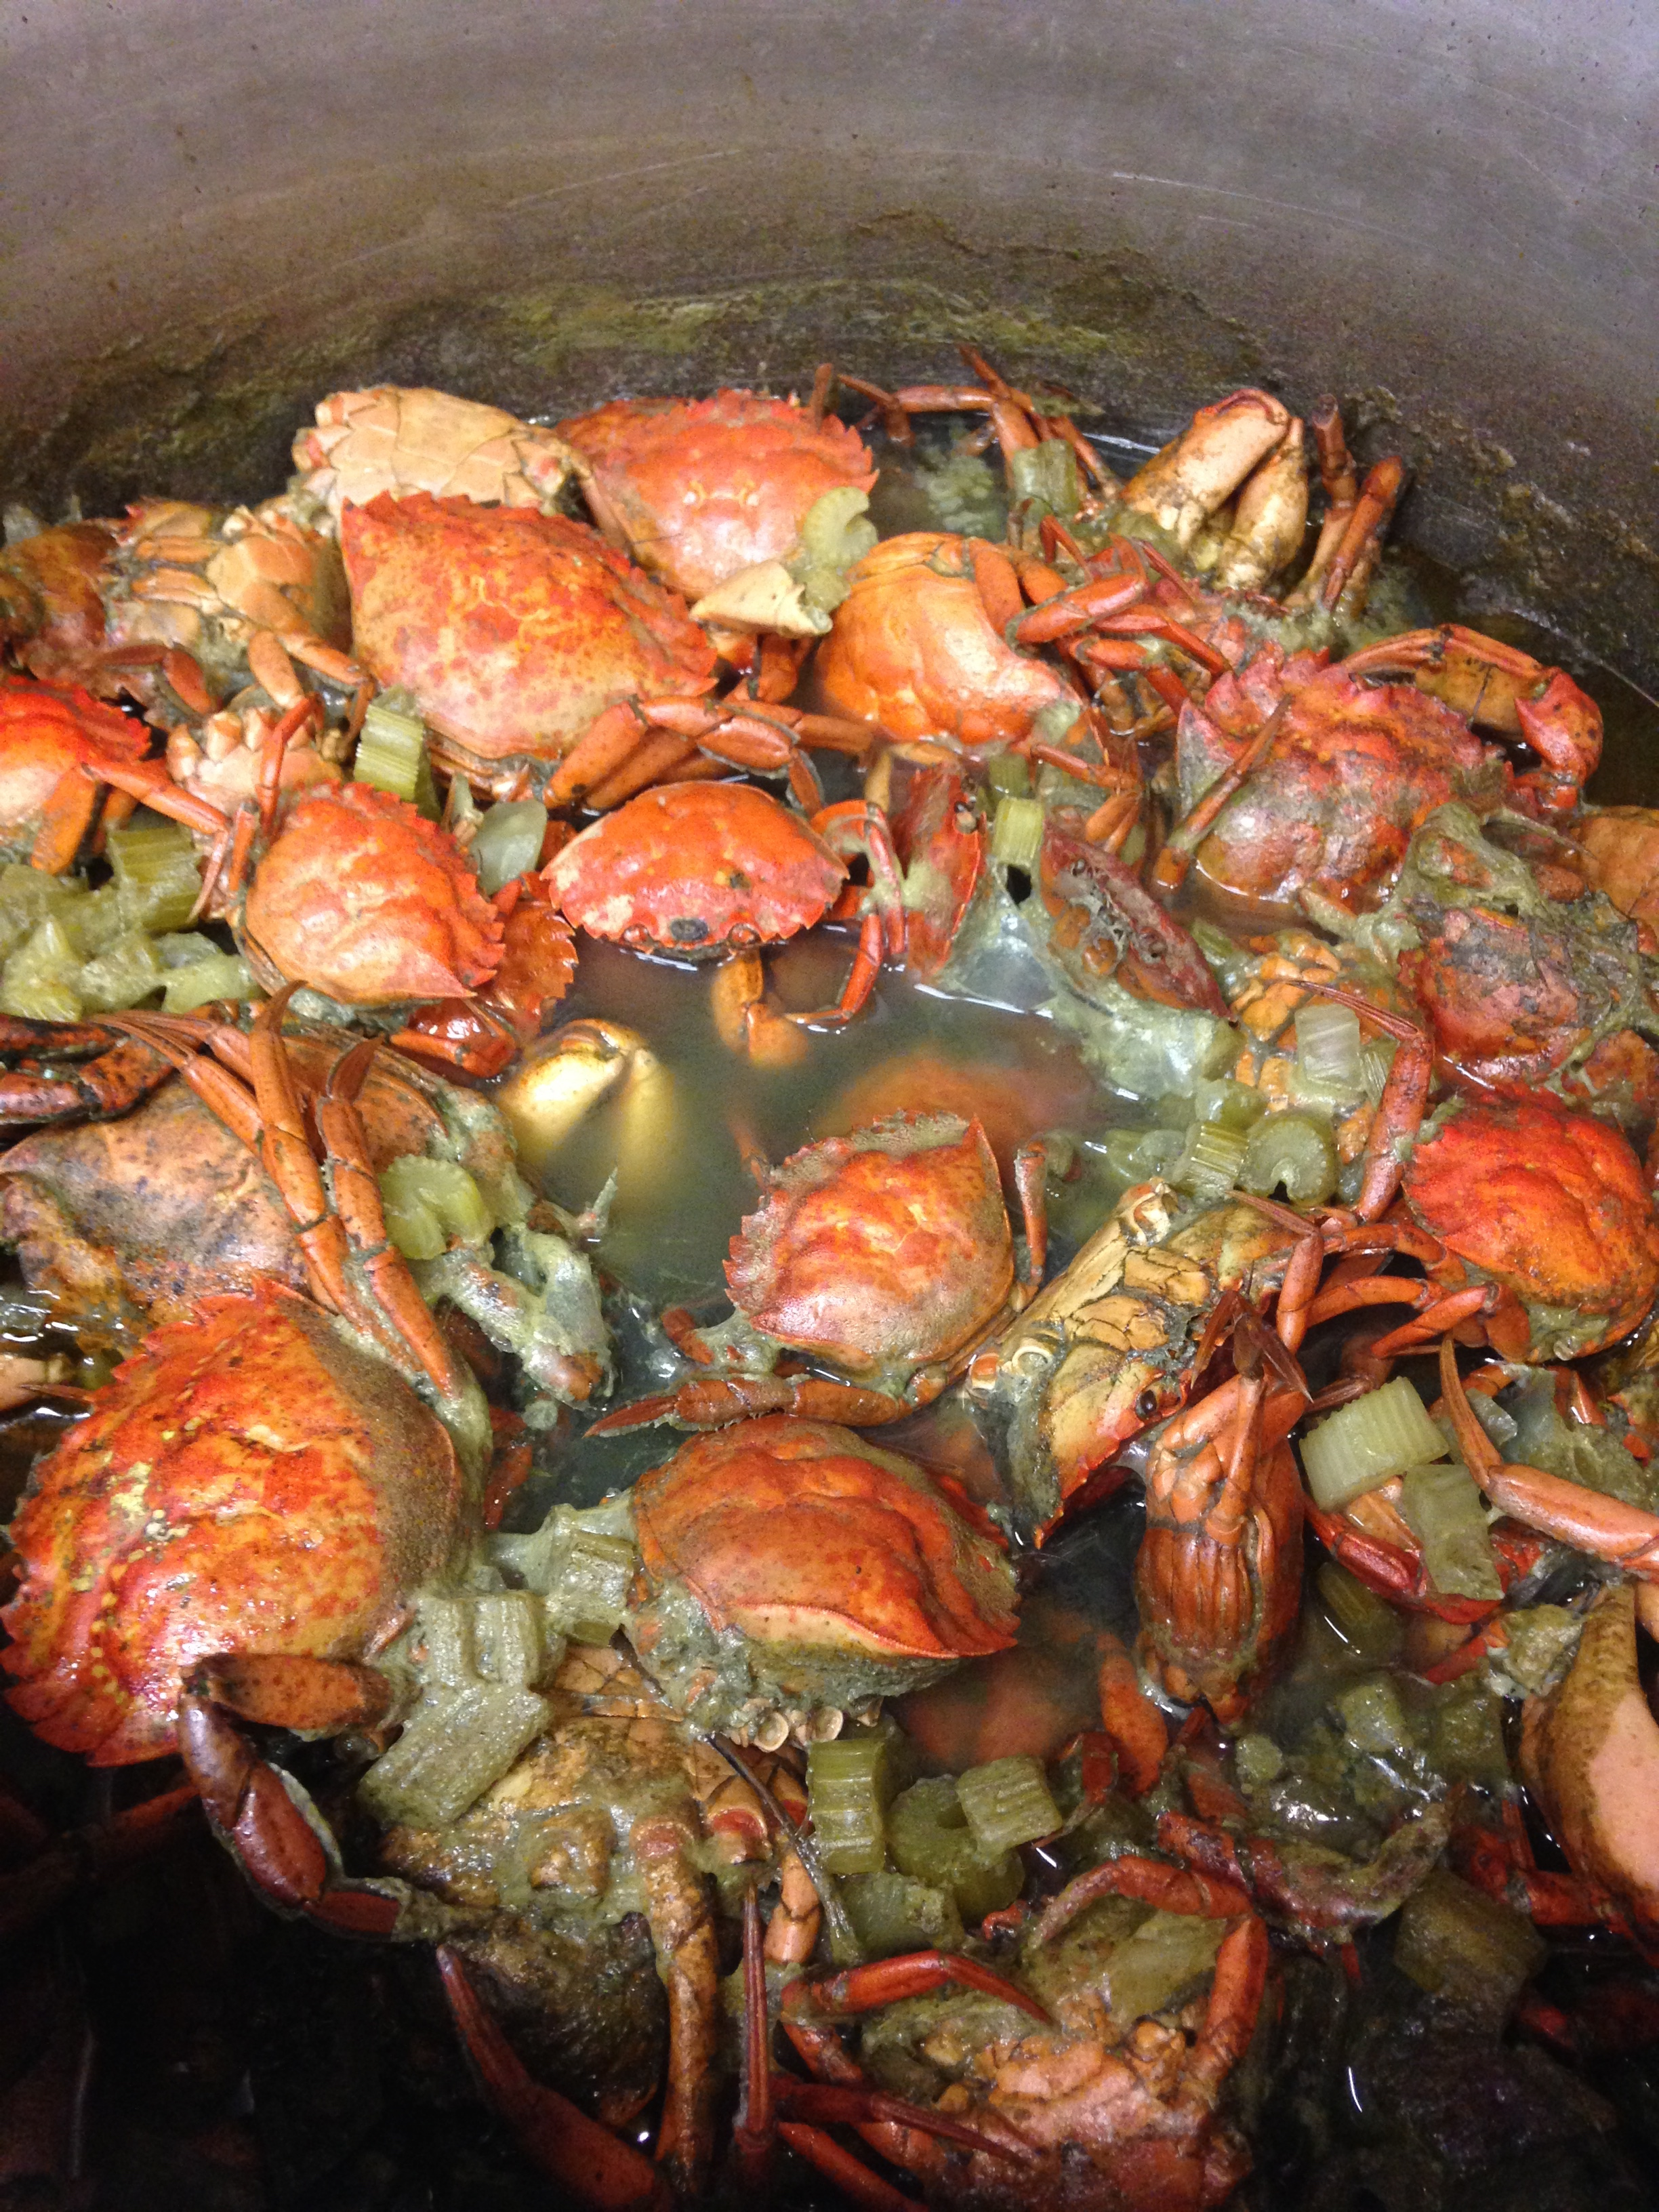 Green crabs simmering in a stock